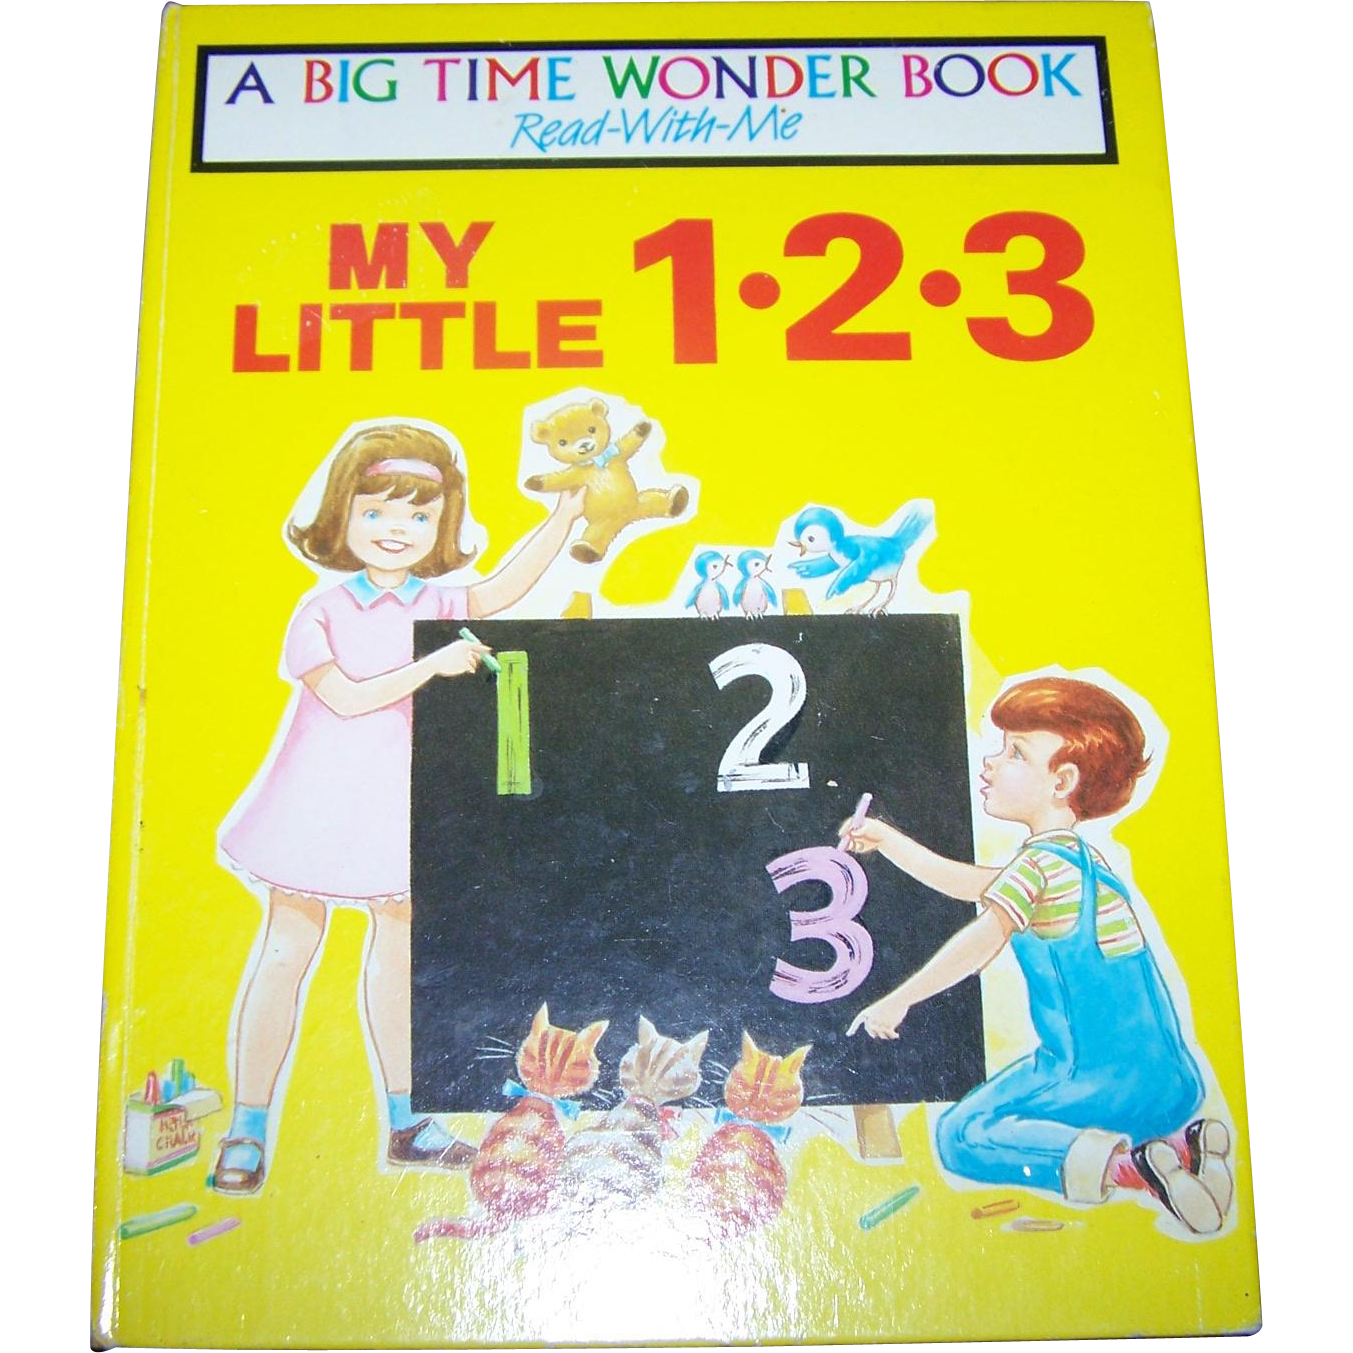 A Big Time Wonder Book Read With Me My Little 1-2-3